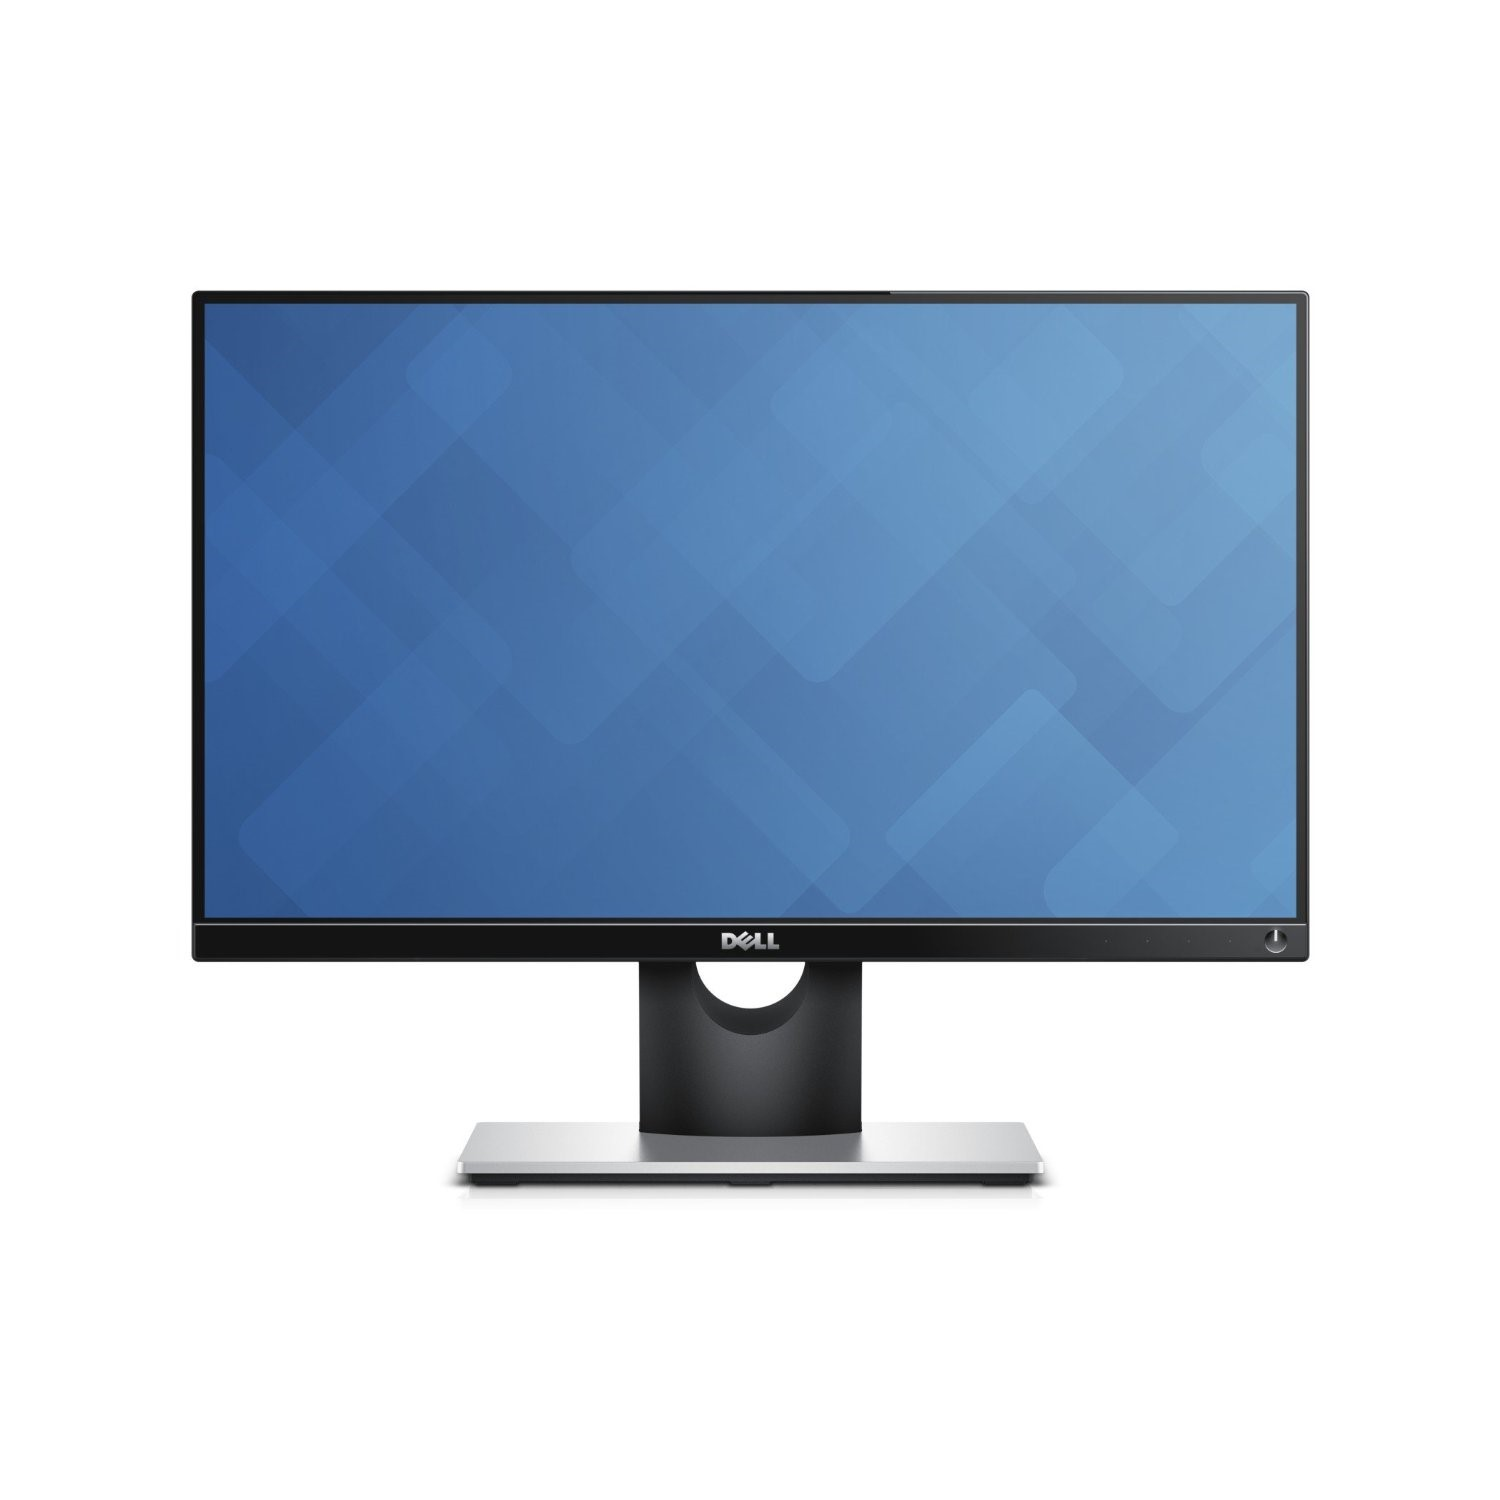 Image of Dell 21.5″ Widescreen Monitor